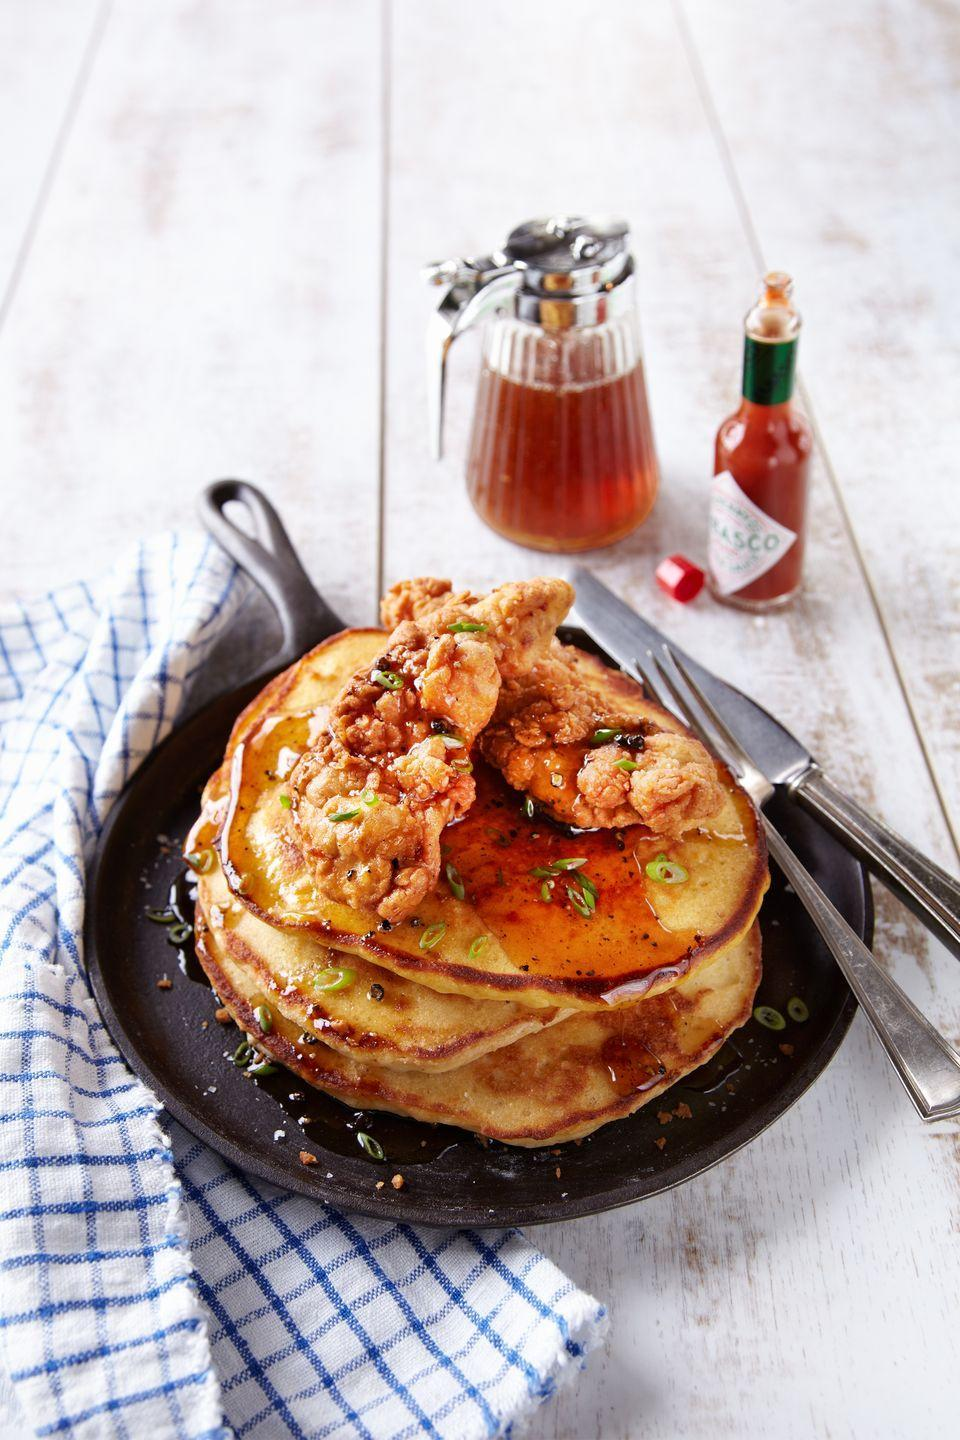 """<p>Eat breakfast for dinner! Avoid soggy chicken by placing just-fried chicken on a <a href=""""https://www.amazon.com/Stainless-Steel-Cooling-Rack-Commercial/dp/B00ZO6FTK6/?tag=syn-yahoo-20&ascsubtag=%5Bartid%7C10050.g.680%5Bsrc%7Cyahoo-us"""" rel=""""nofollow noopener"""" target=""""_blank"""" data-ylk=""""slk:cooling rack"""" class=""""link rapid-noclick-resp"""">cooling rack</a> allows air to circulate around it, resulting in perfectly crisp flapjack toppers.</p><p><strong><a href=""""https://www.countryliving.com/food-drinks/recipes/a37593/chicken-corn-bread-pancakes-spicy-syrup/"""" rel=""""nofollow noopener"""" target=""""_blank"""" data-ylk=""""slk:Get the recipe"""" class=""""link rapid-noclick-resp"""">Get the recipe</a>.</strong><br></p><p><a class=""""link rapid-noclick-resp"""" href=""""https://www.amazon.com/Stainless-Steel-Cooling-Rack-Commercial/dp/B00ZO6FTK6/?tag=syn-yahoo-20&ascsubtag=%5Bartid%7C10050.g.680%5Bsrc%7Cyahoo-us"""" rel=""""nofollow noopener"""" target=""""_blank"""" data-ylk=""""slk:SHOP COOLING RACKS"""">SHOP COOLING RACKS</a> </p>"""